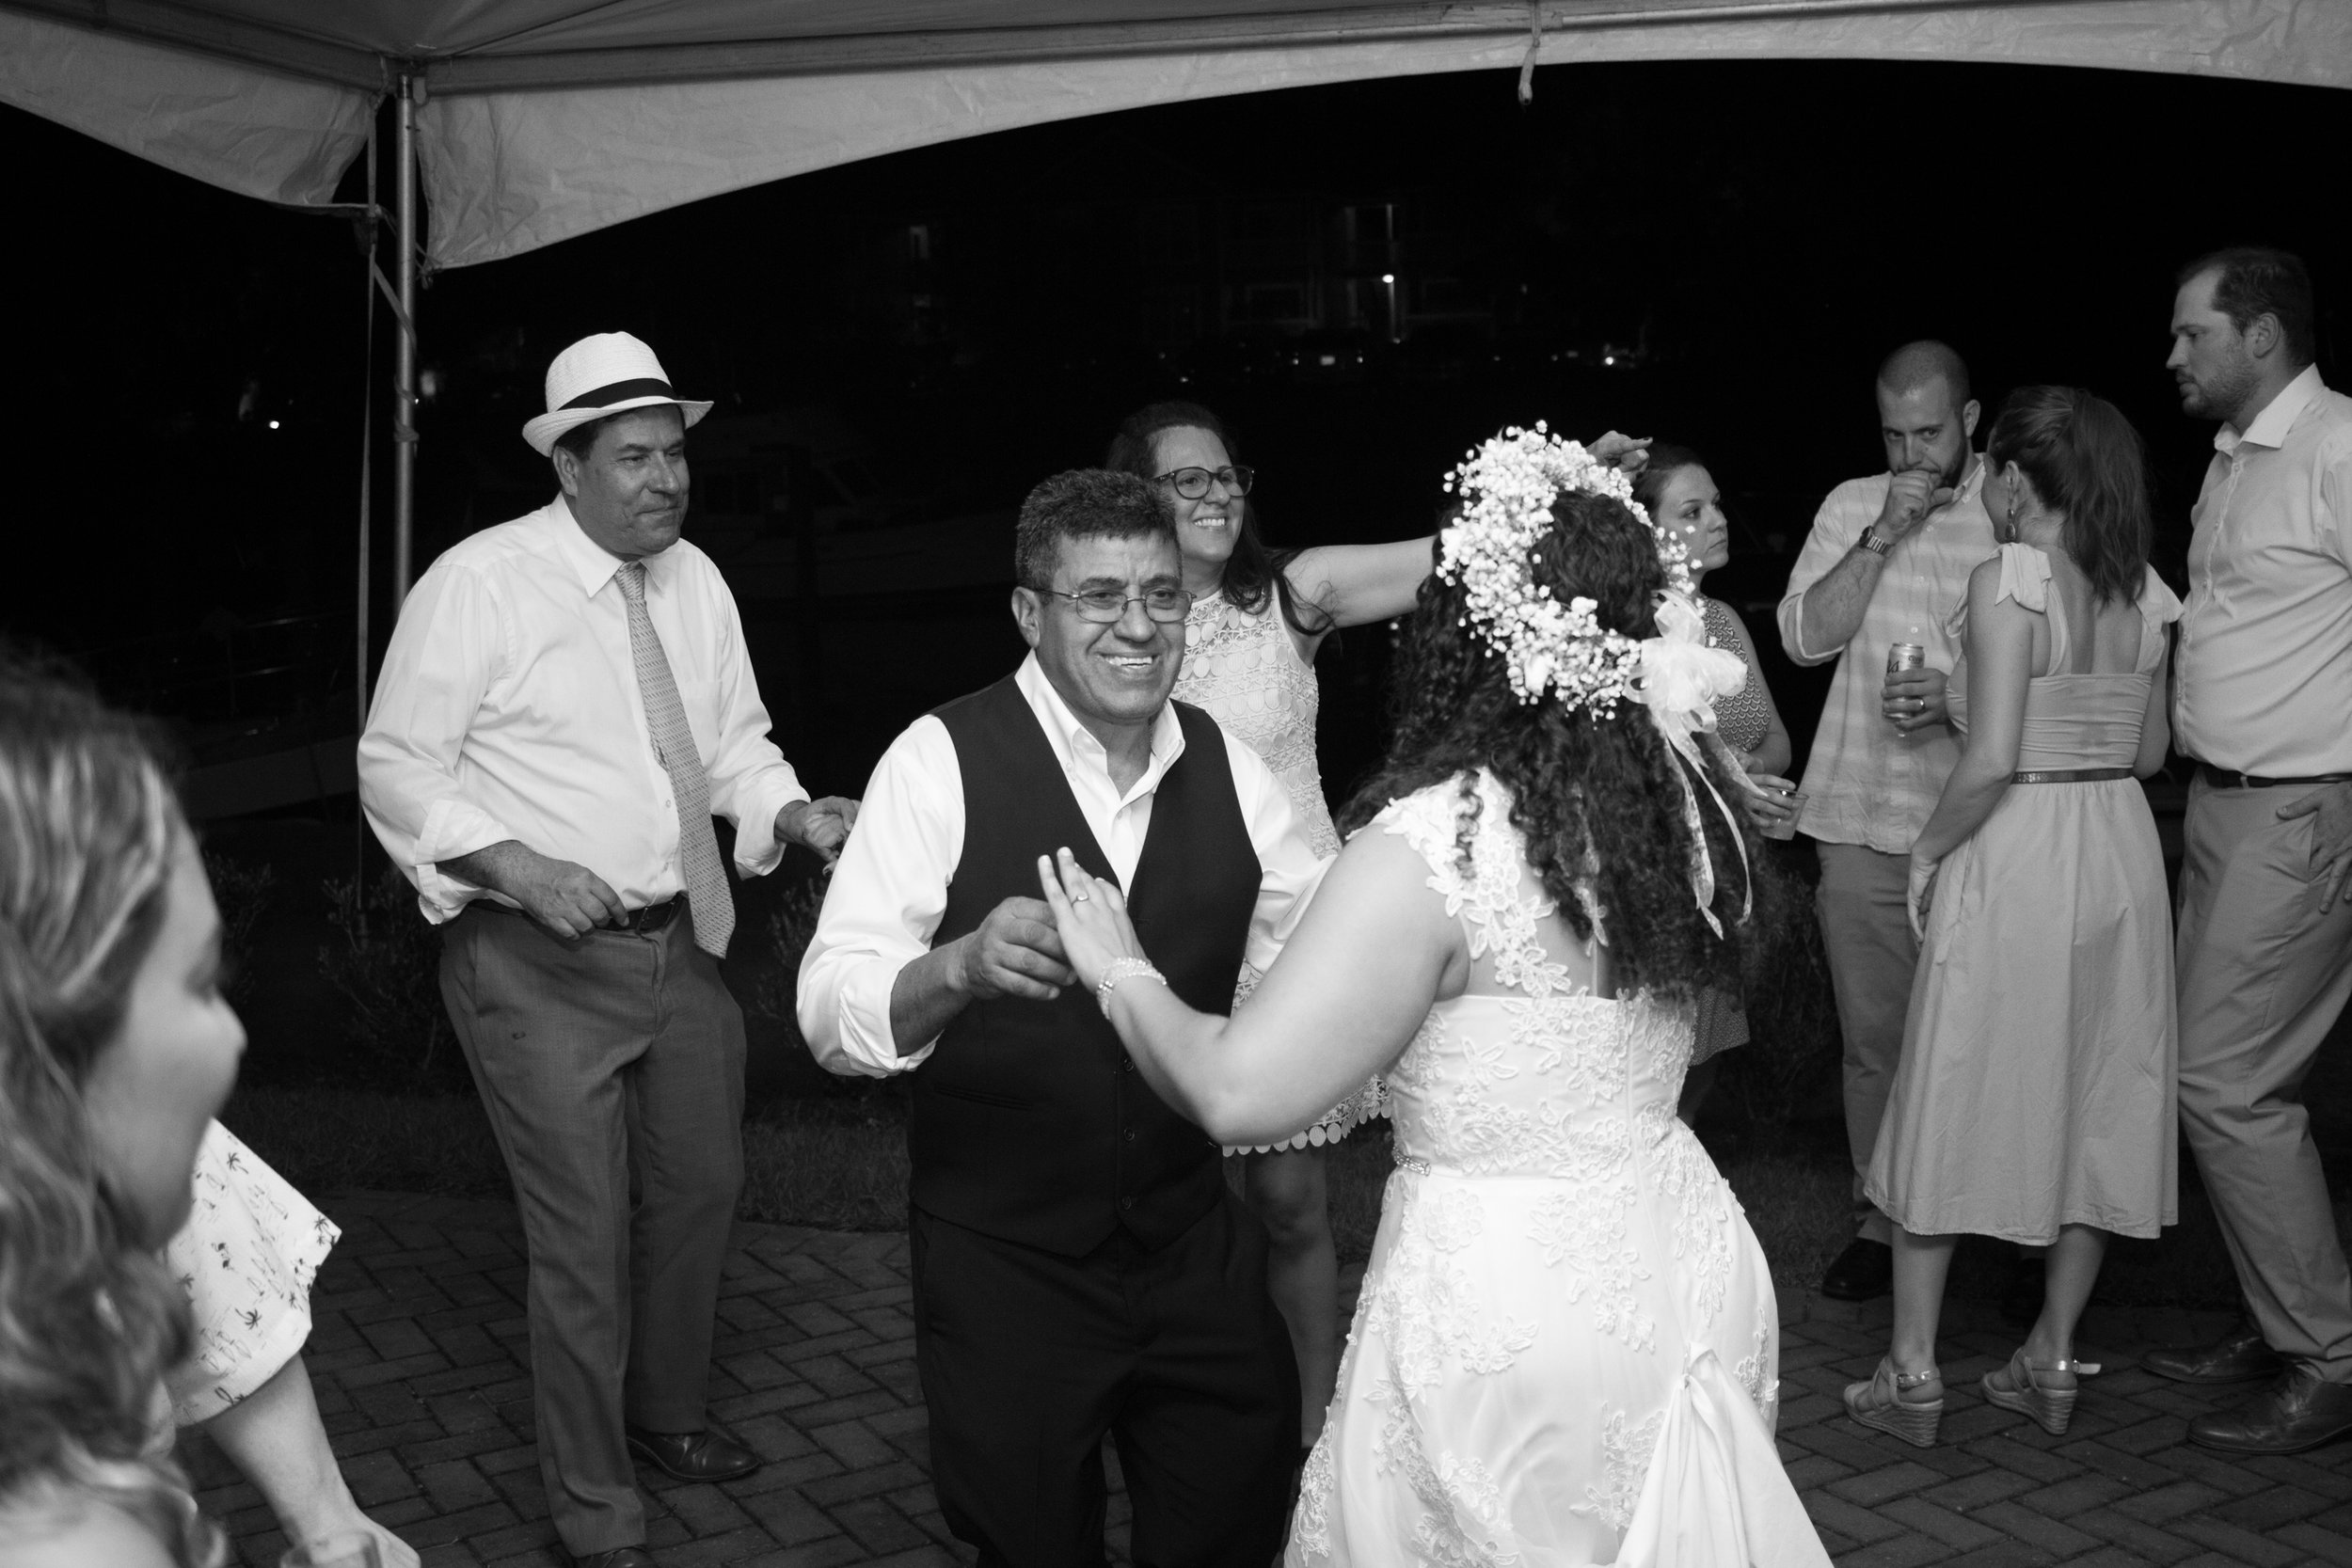 Cathy and Chris Wedding Photos - Black and White - by Brittany Castillo Meadow Portraits (18 of 21).jpg